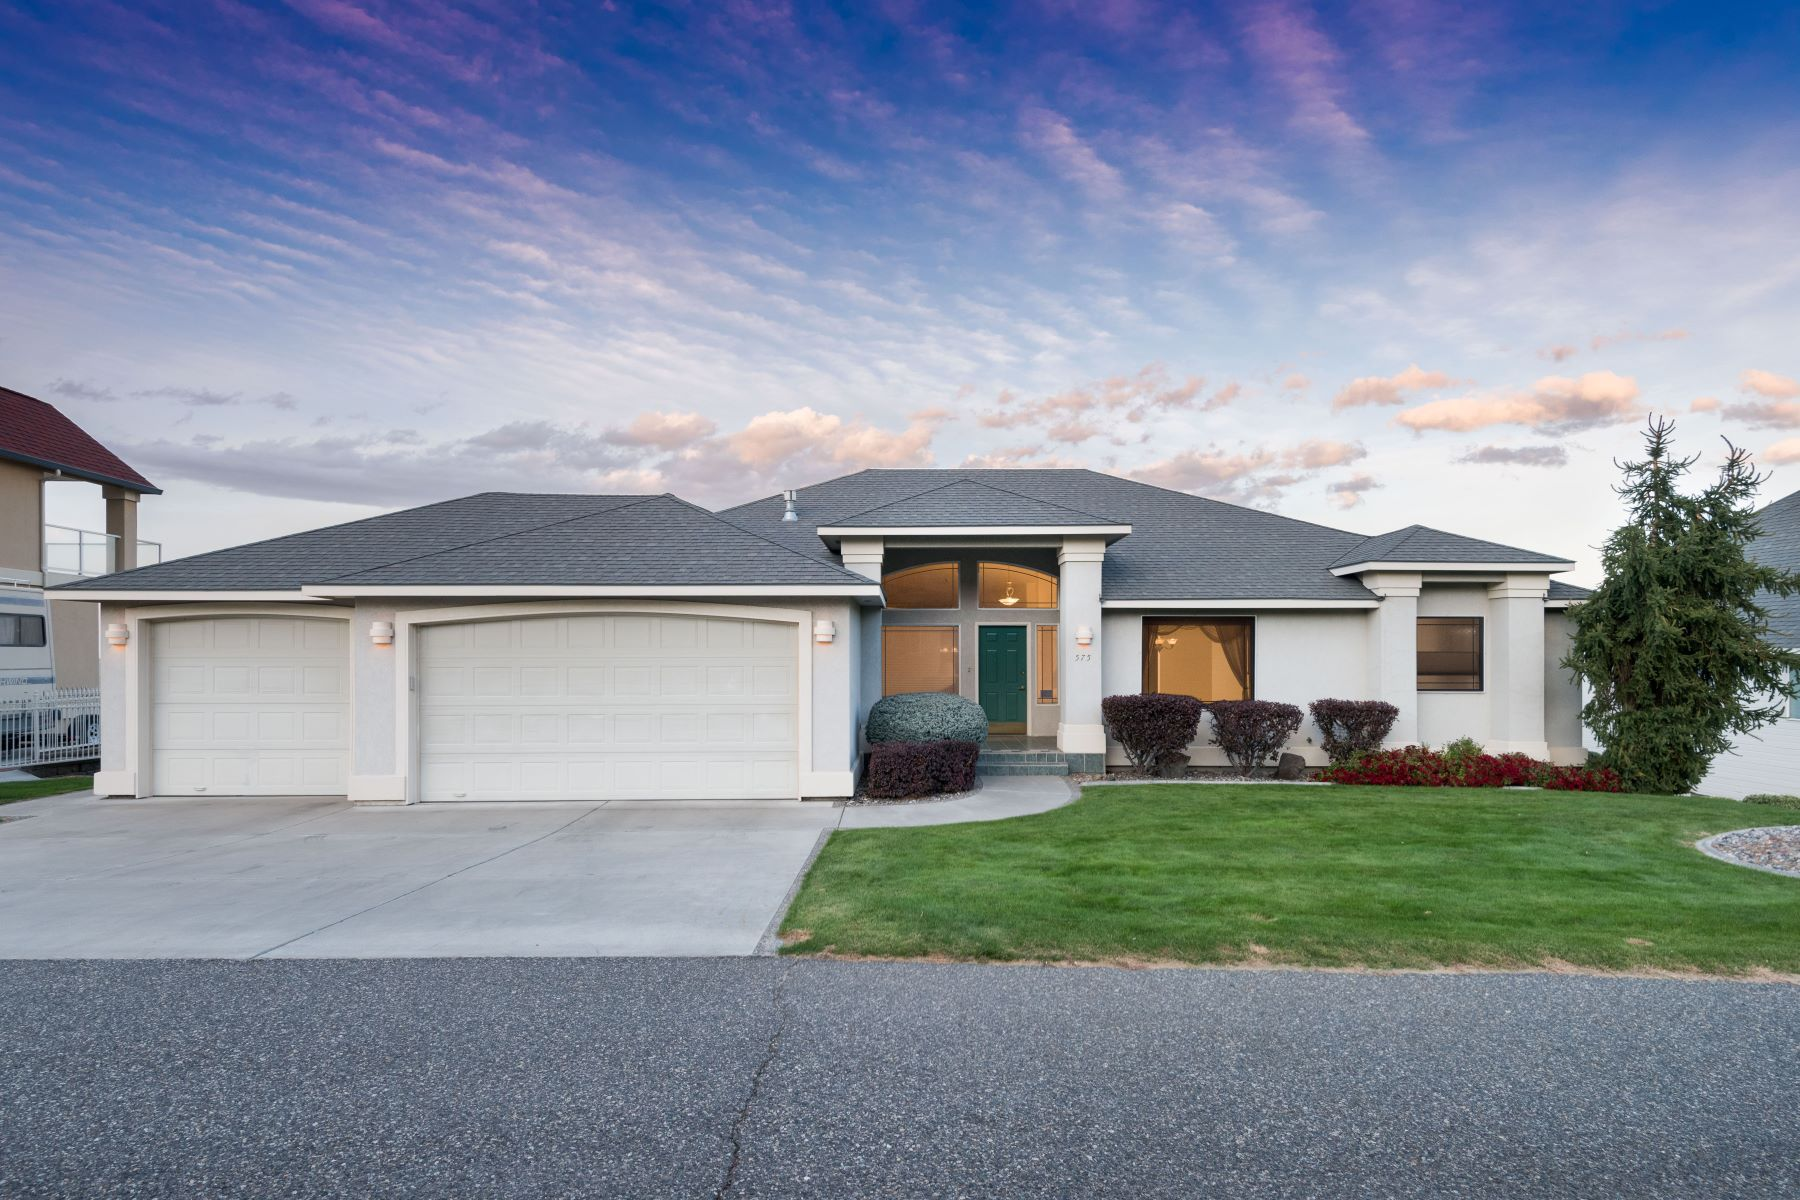 Single Family Home for Sale at Crested Hills City and River Views 575 Clermont Dr Richland, Washington 99352 United States